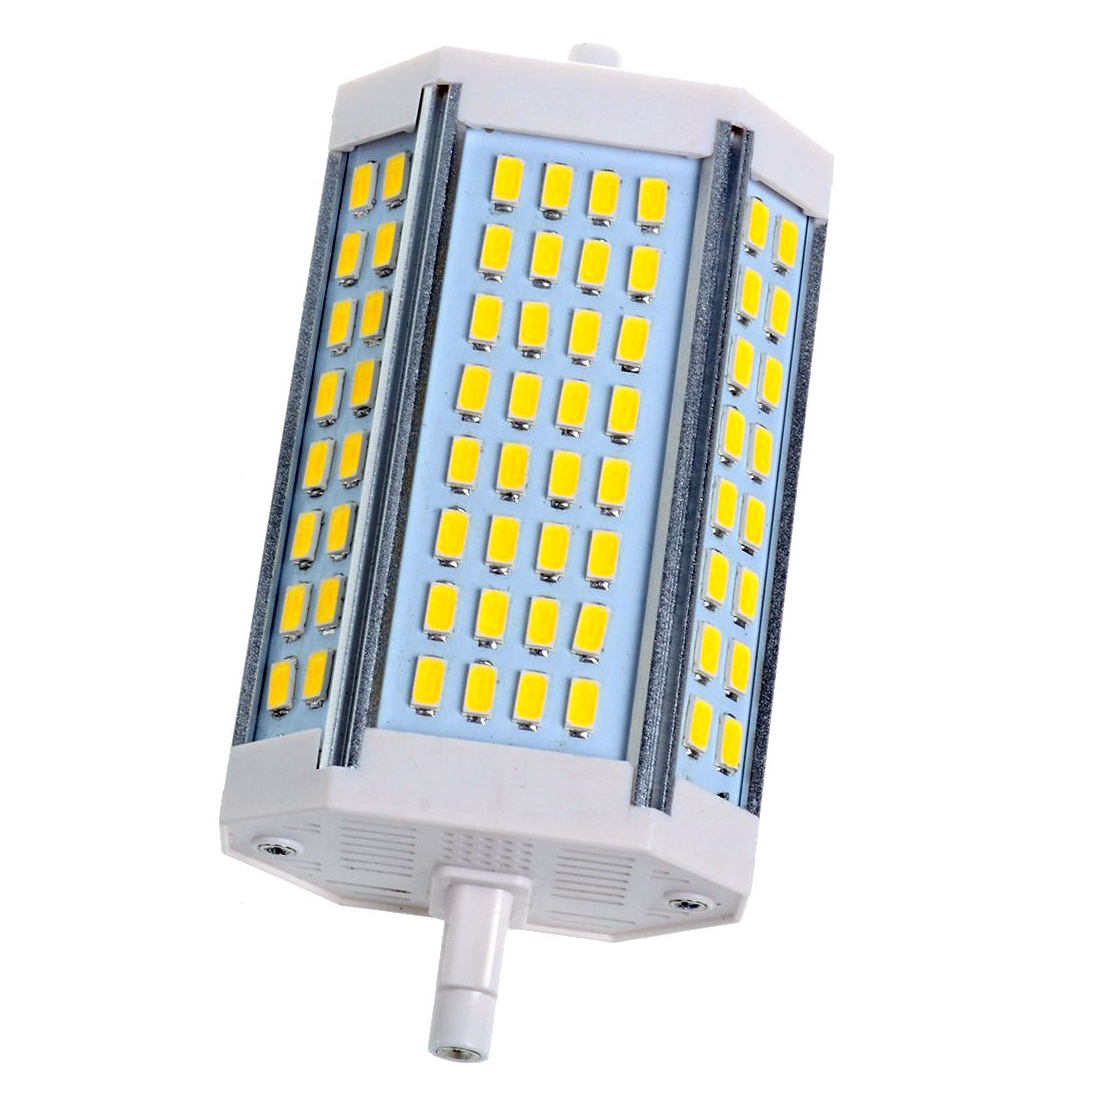 r7s led lampe 30w 118mm 5730 smd leuchtmittel brenner fluter licht halogenstab ebay. Black Bedroom Furniture Sets. Home Design Ideas